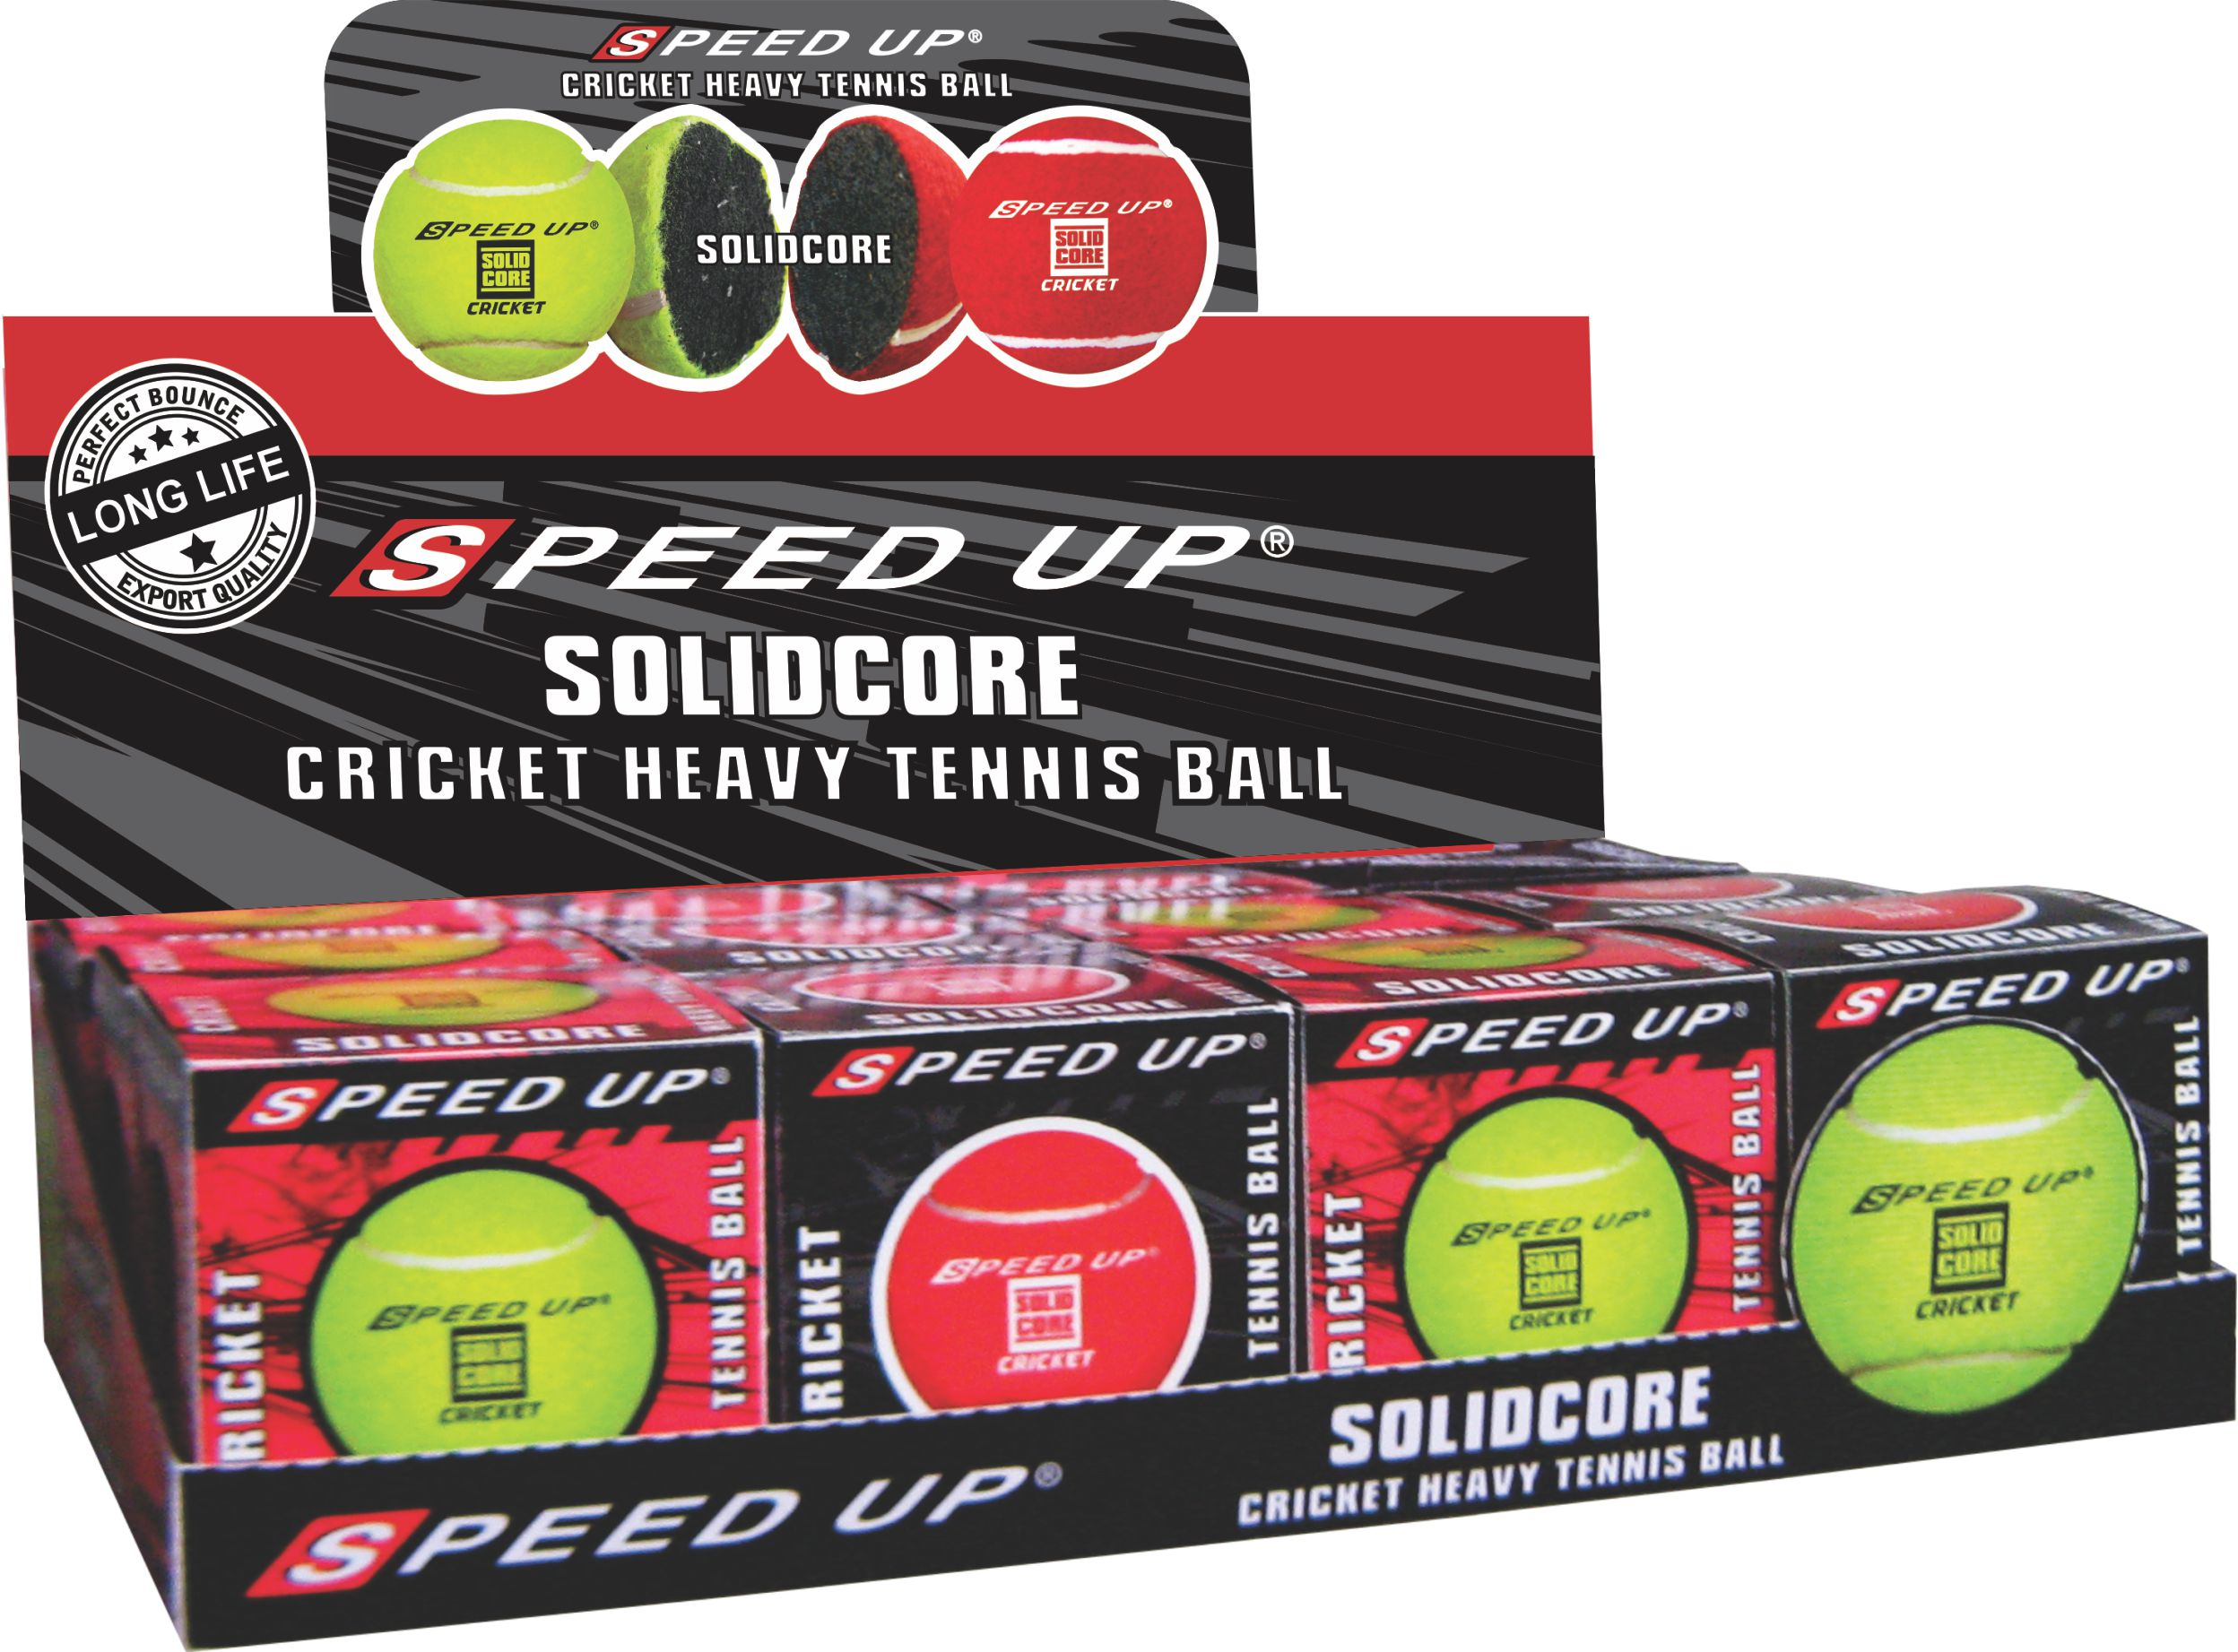 2681 TENNIS CRICKET HARD BALL BOXED